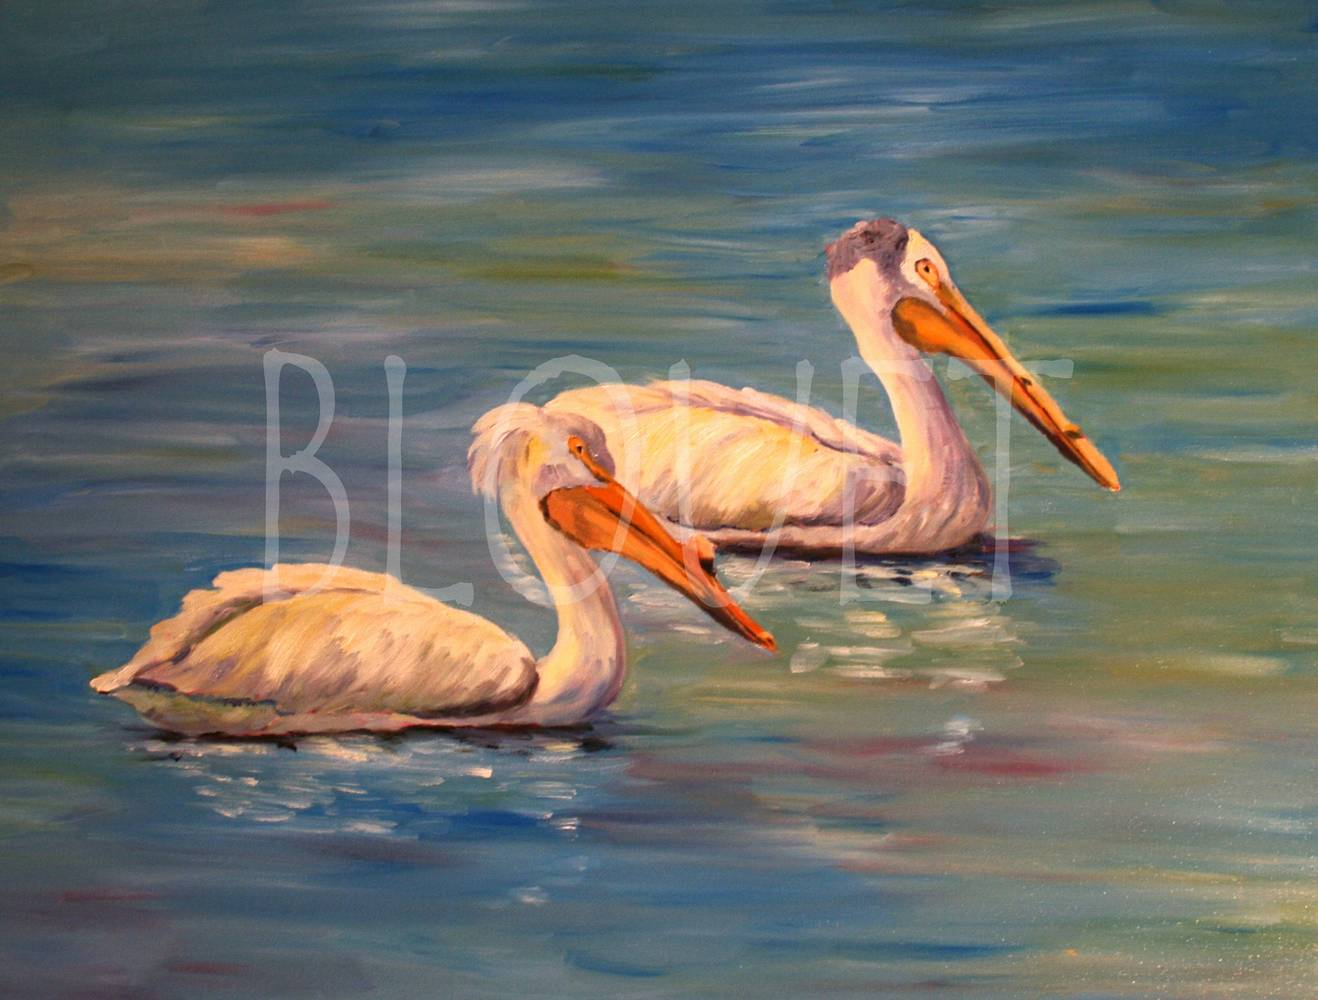 Oil painting Cherry Creek 2 Pelicans by Sophie Dassonville